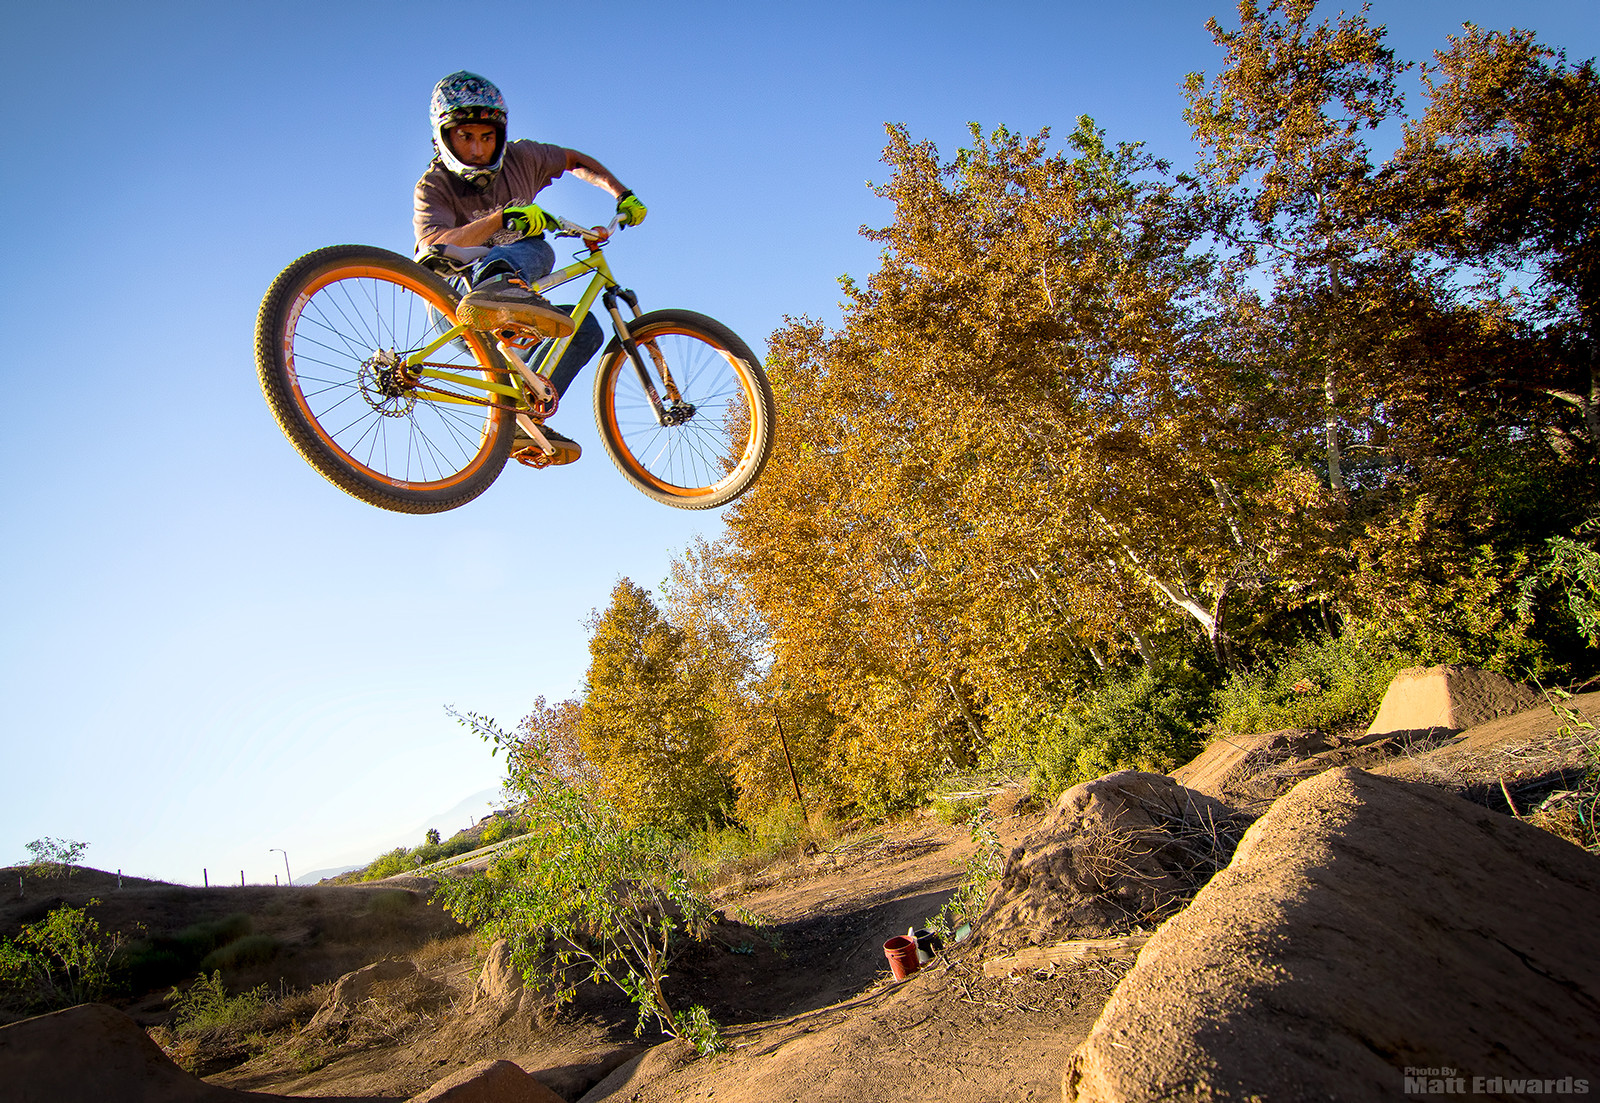 Alvino getting nasty! - EdwardsEntertainment - Mountain Biking Pictures - Vital MTB